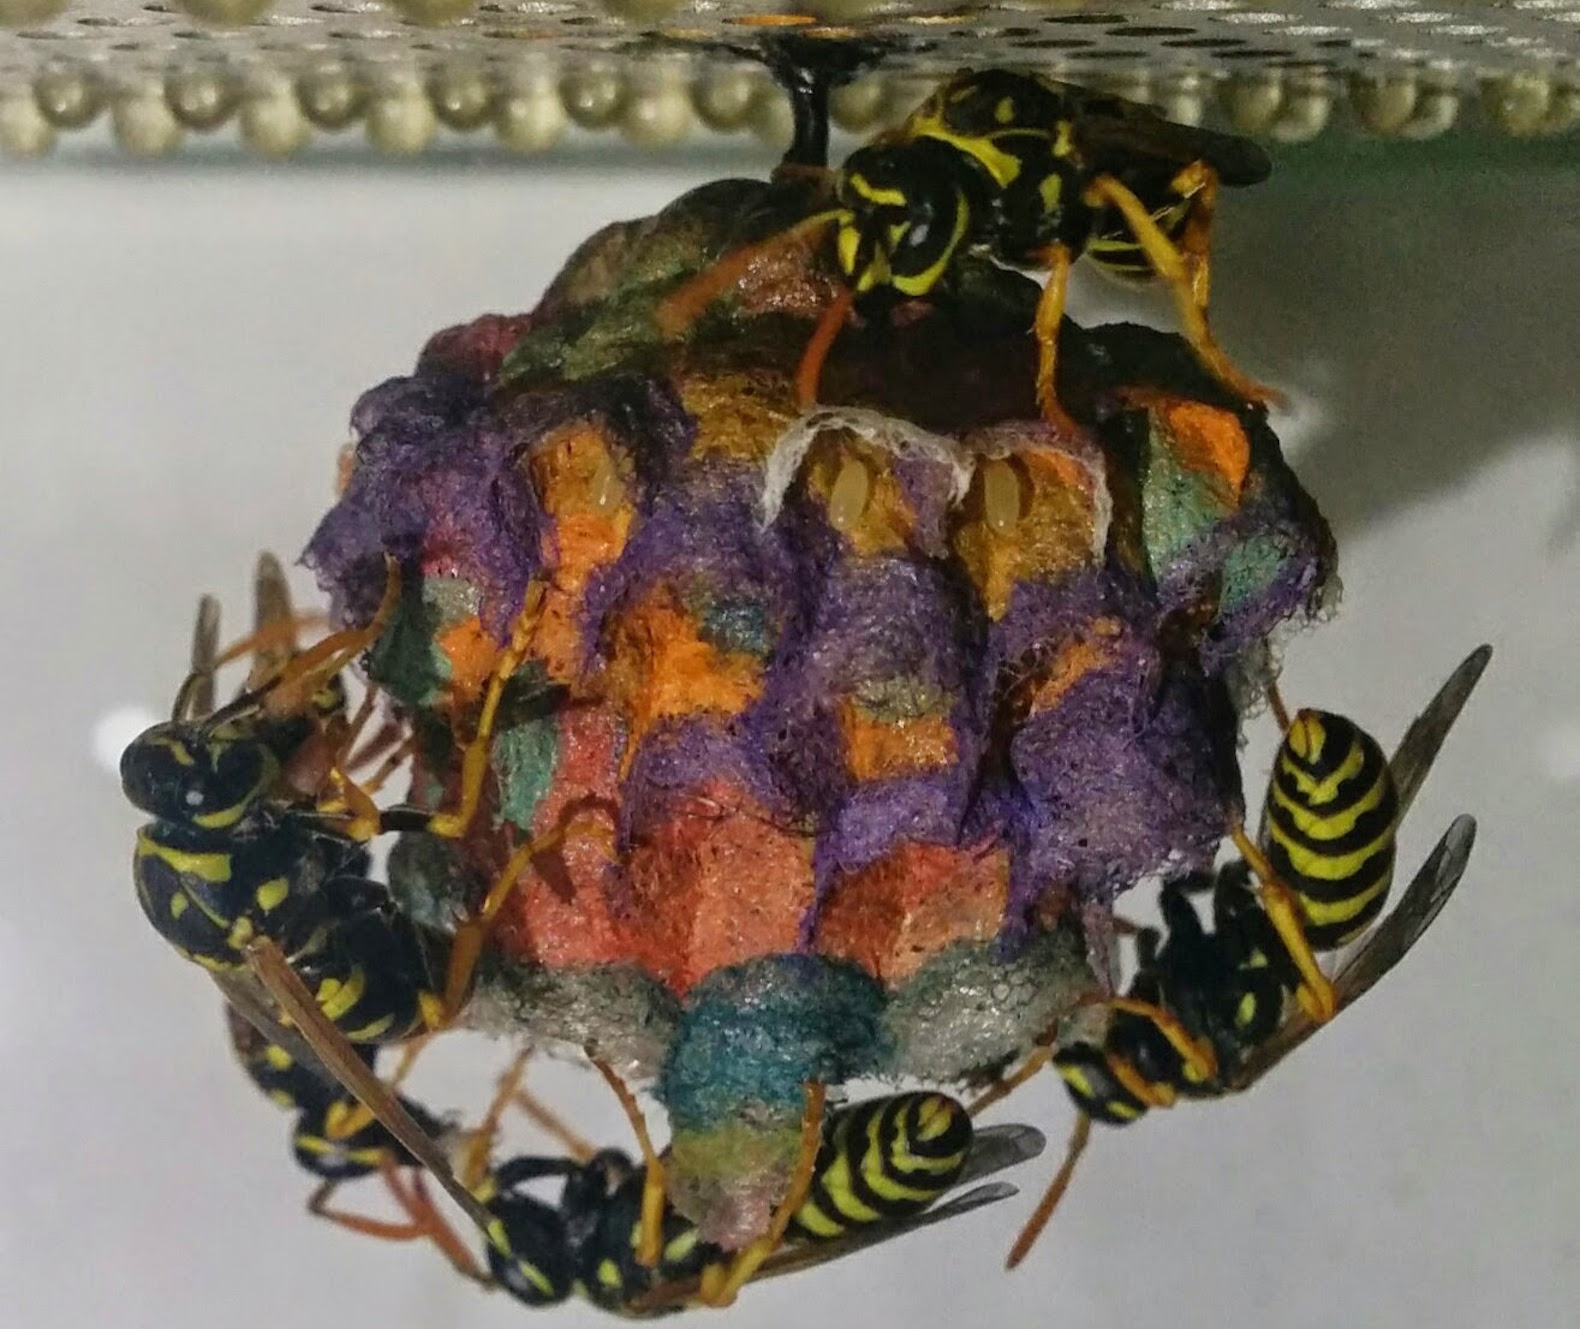 Wasps build rainbow nests with colored construction paper